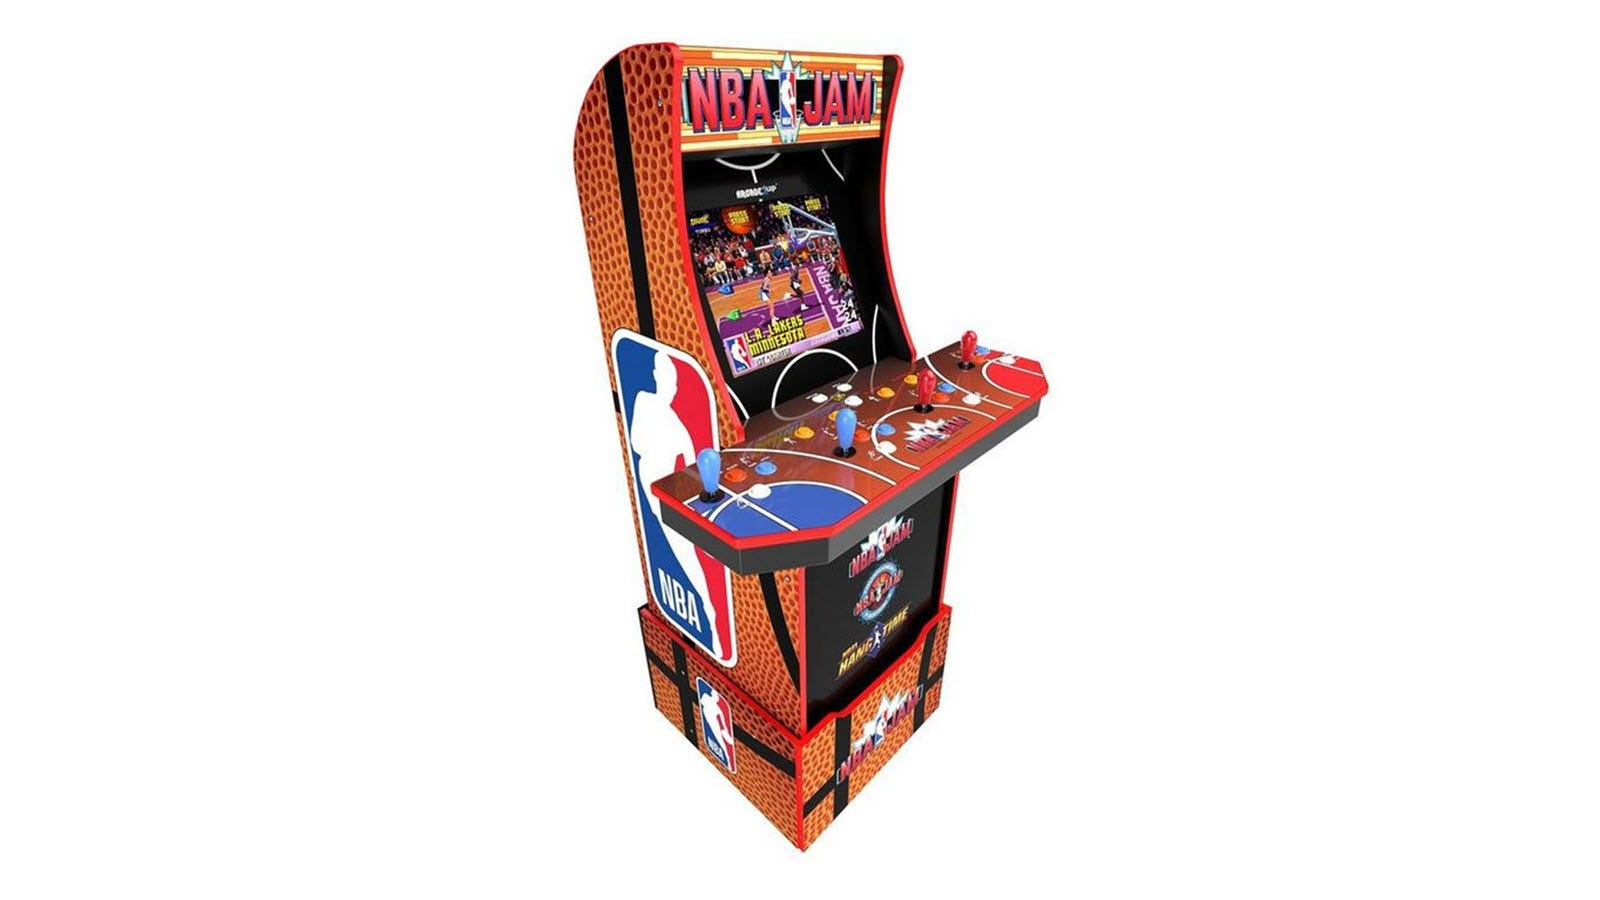 An Arcade1Up NBA Jam Machine with four joysticks.